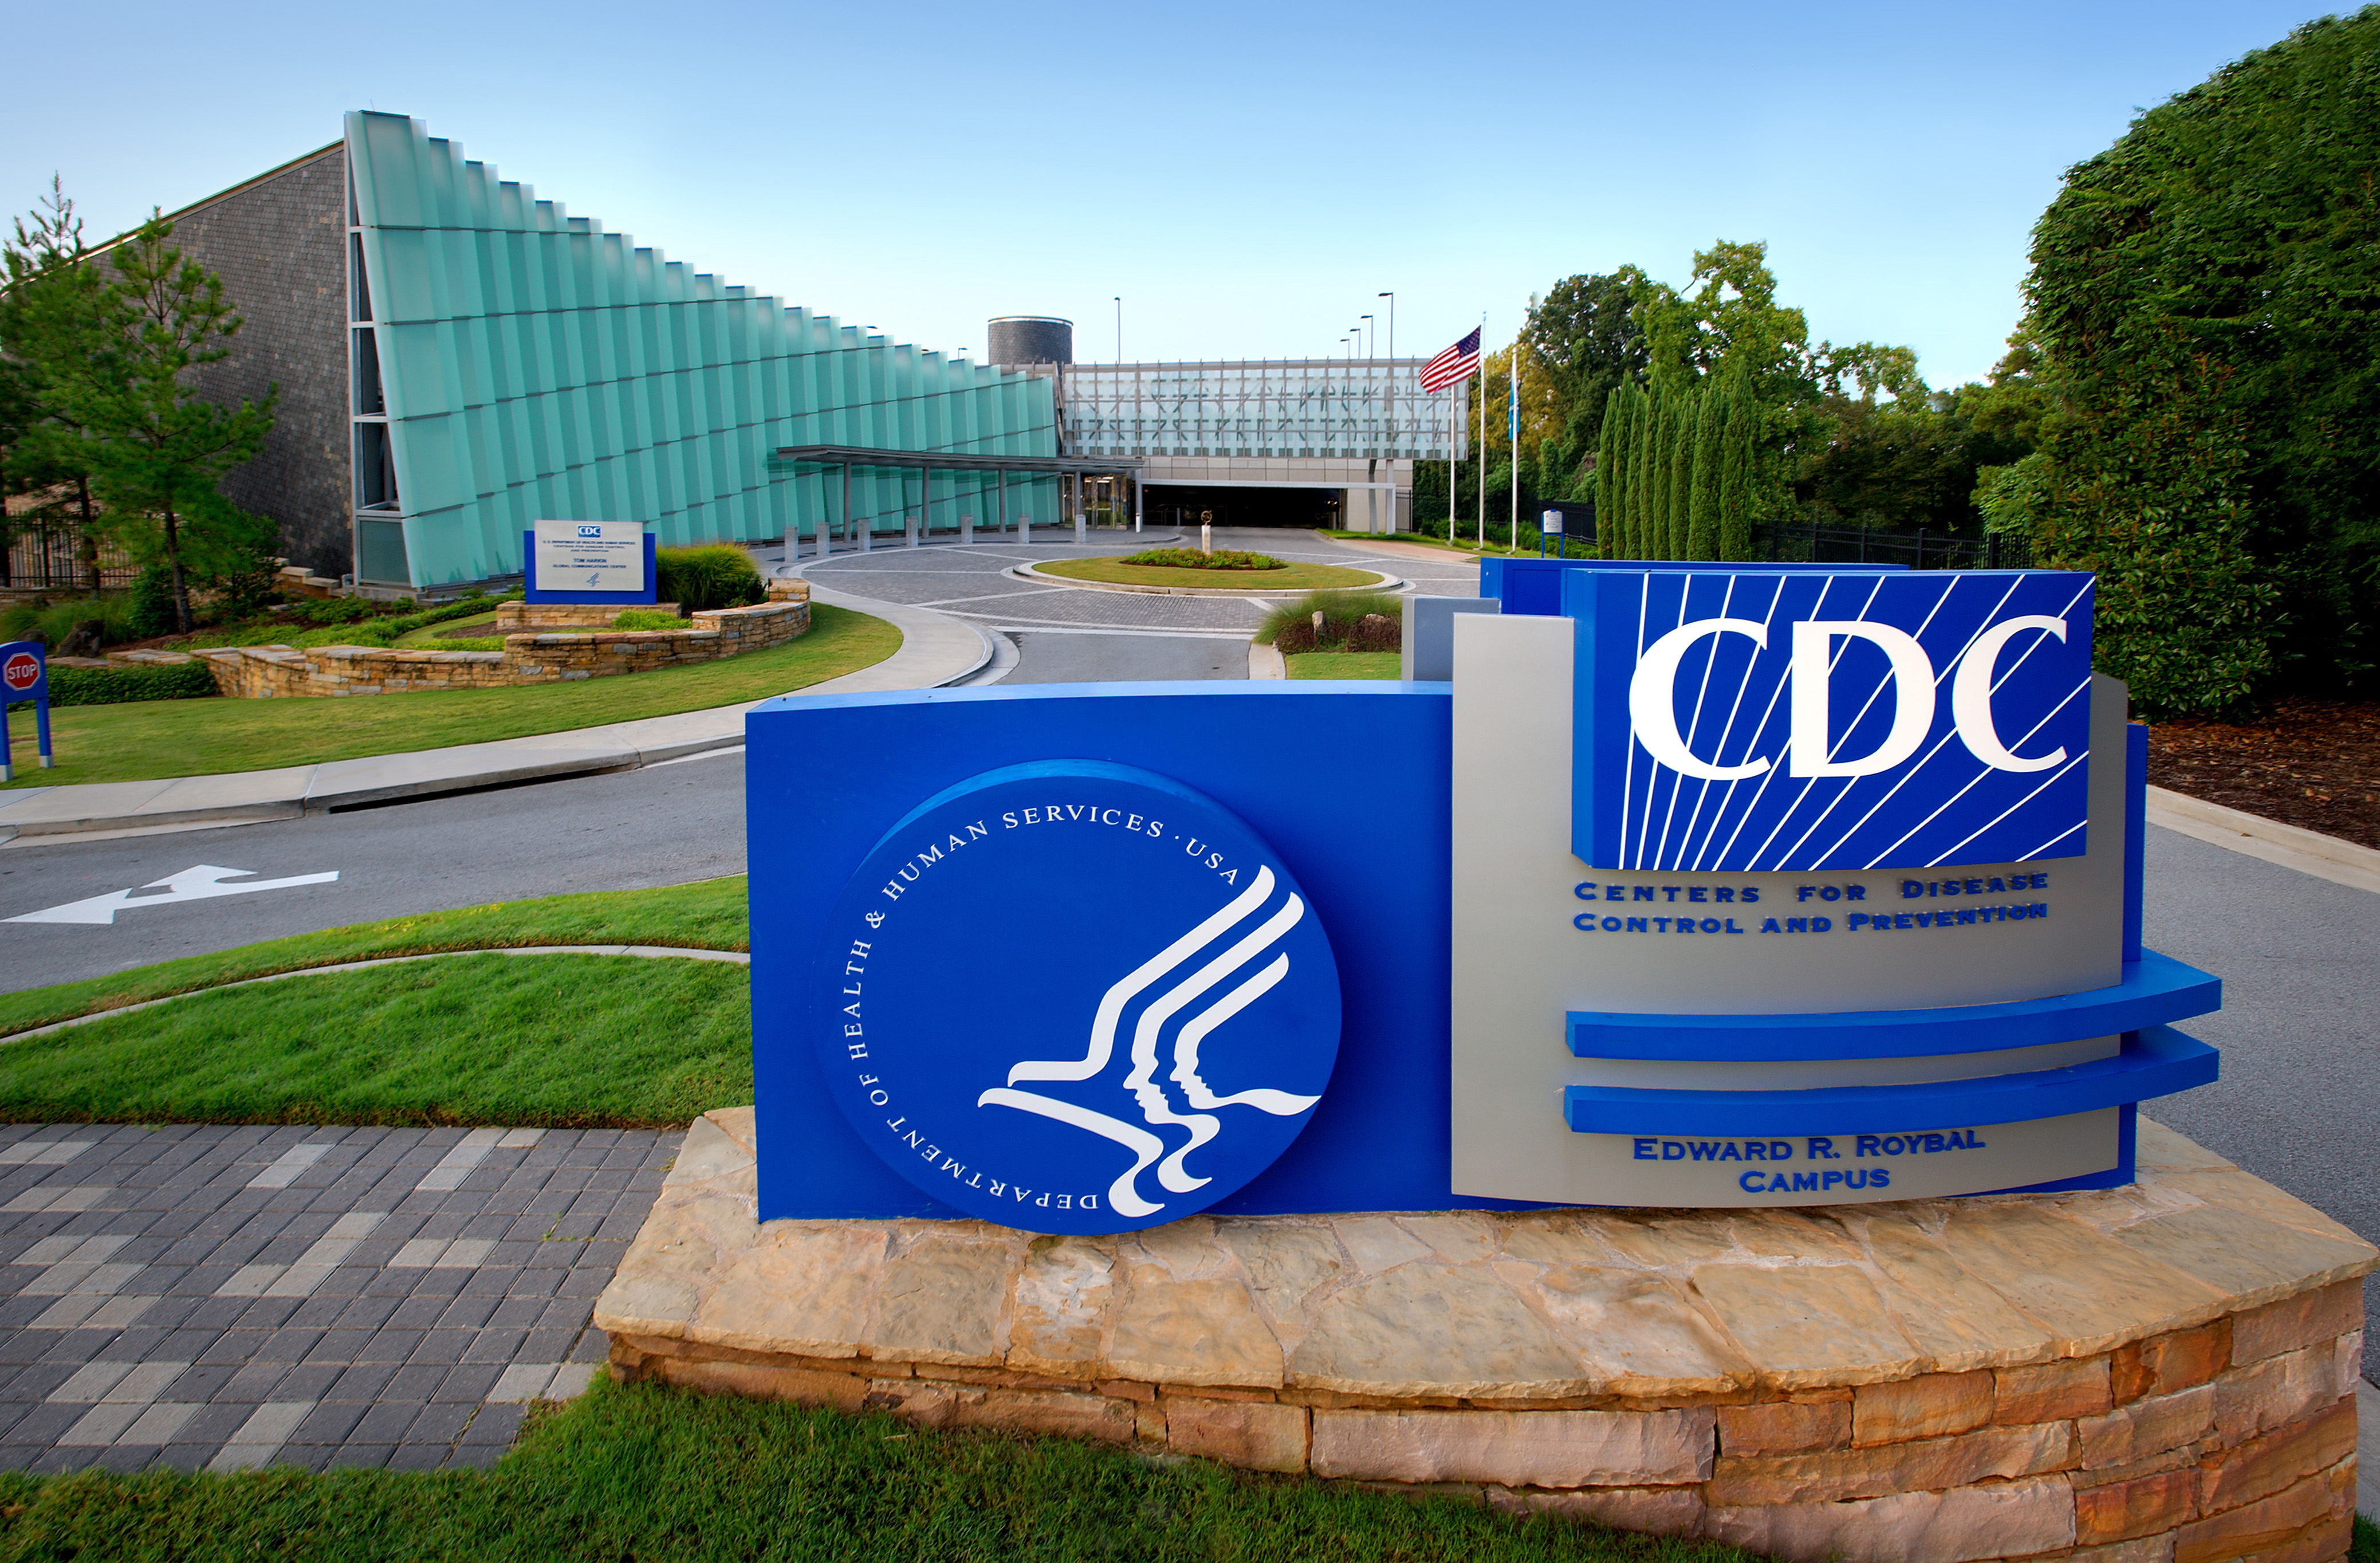 exterior-of-cdc-museum_credit-Jim-Gathany.jpg